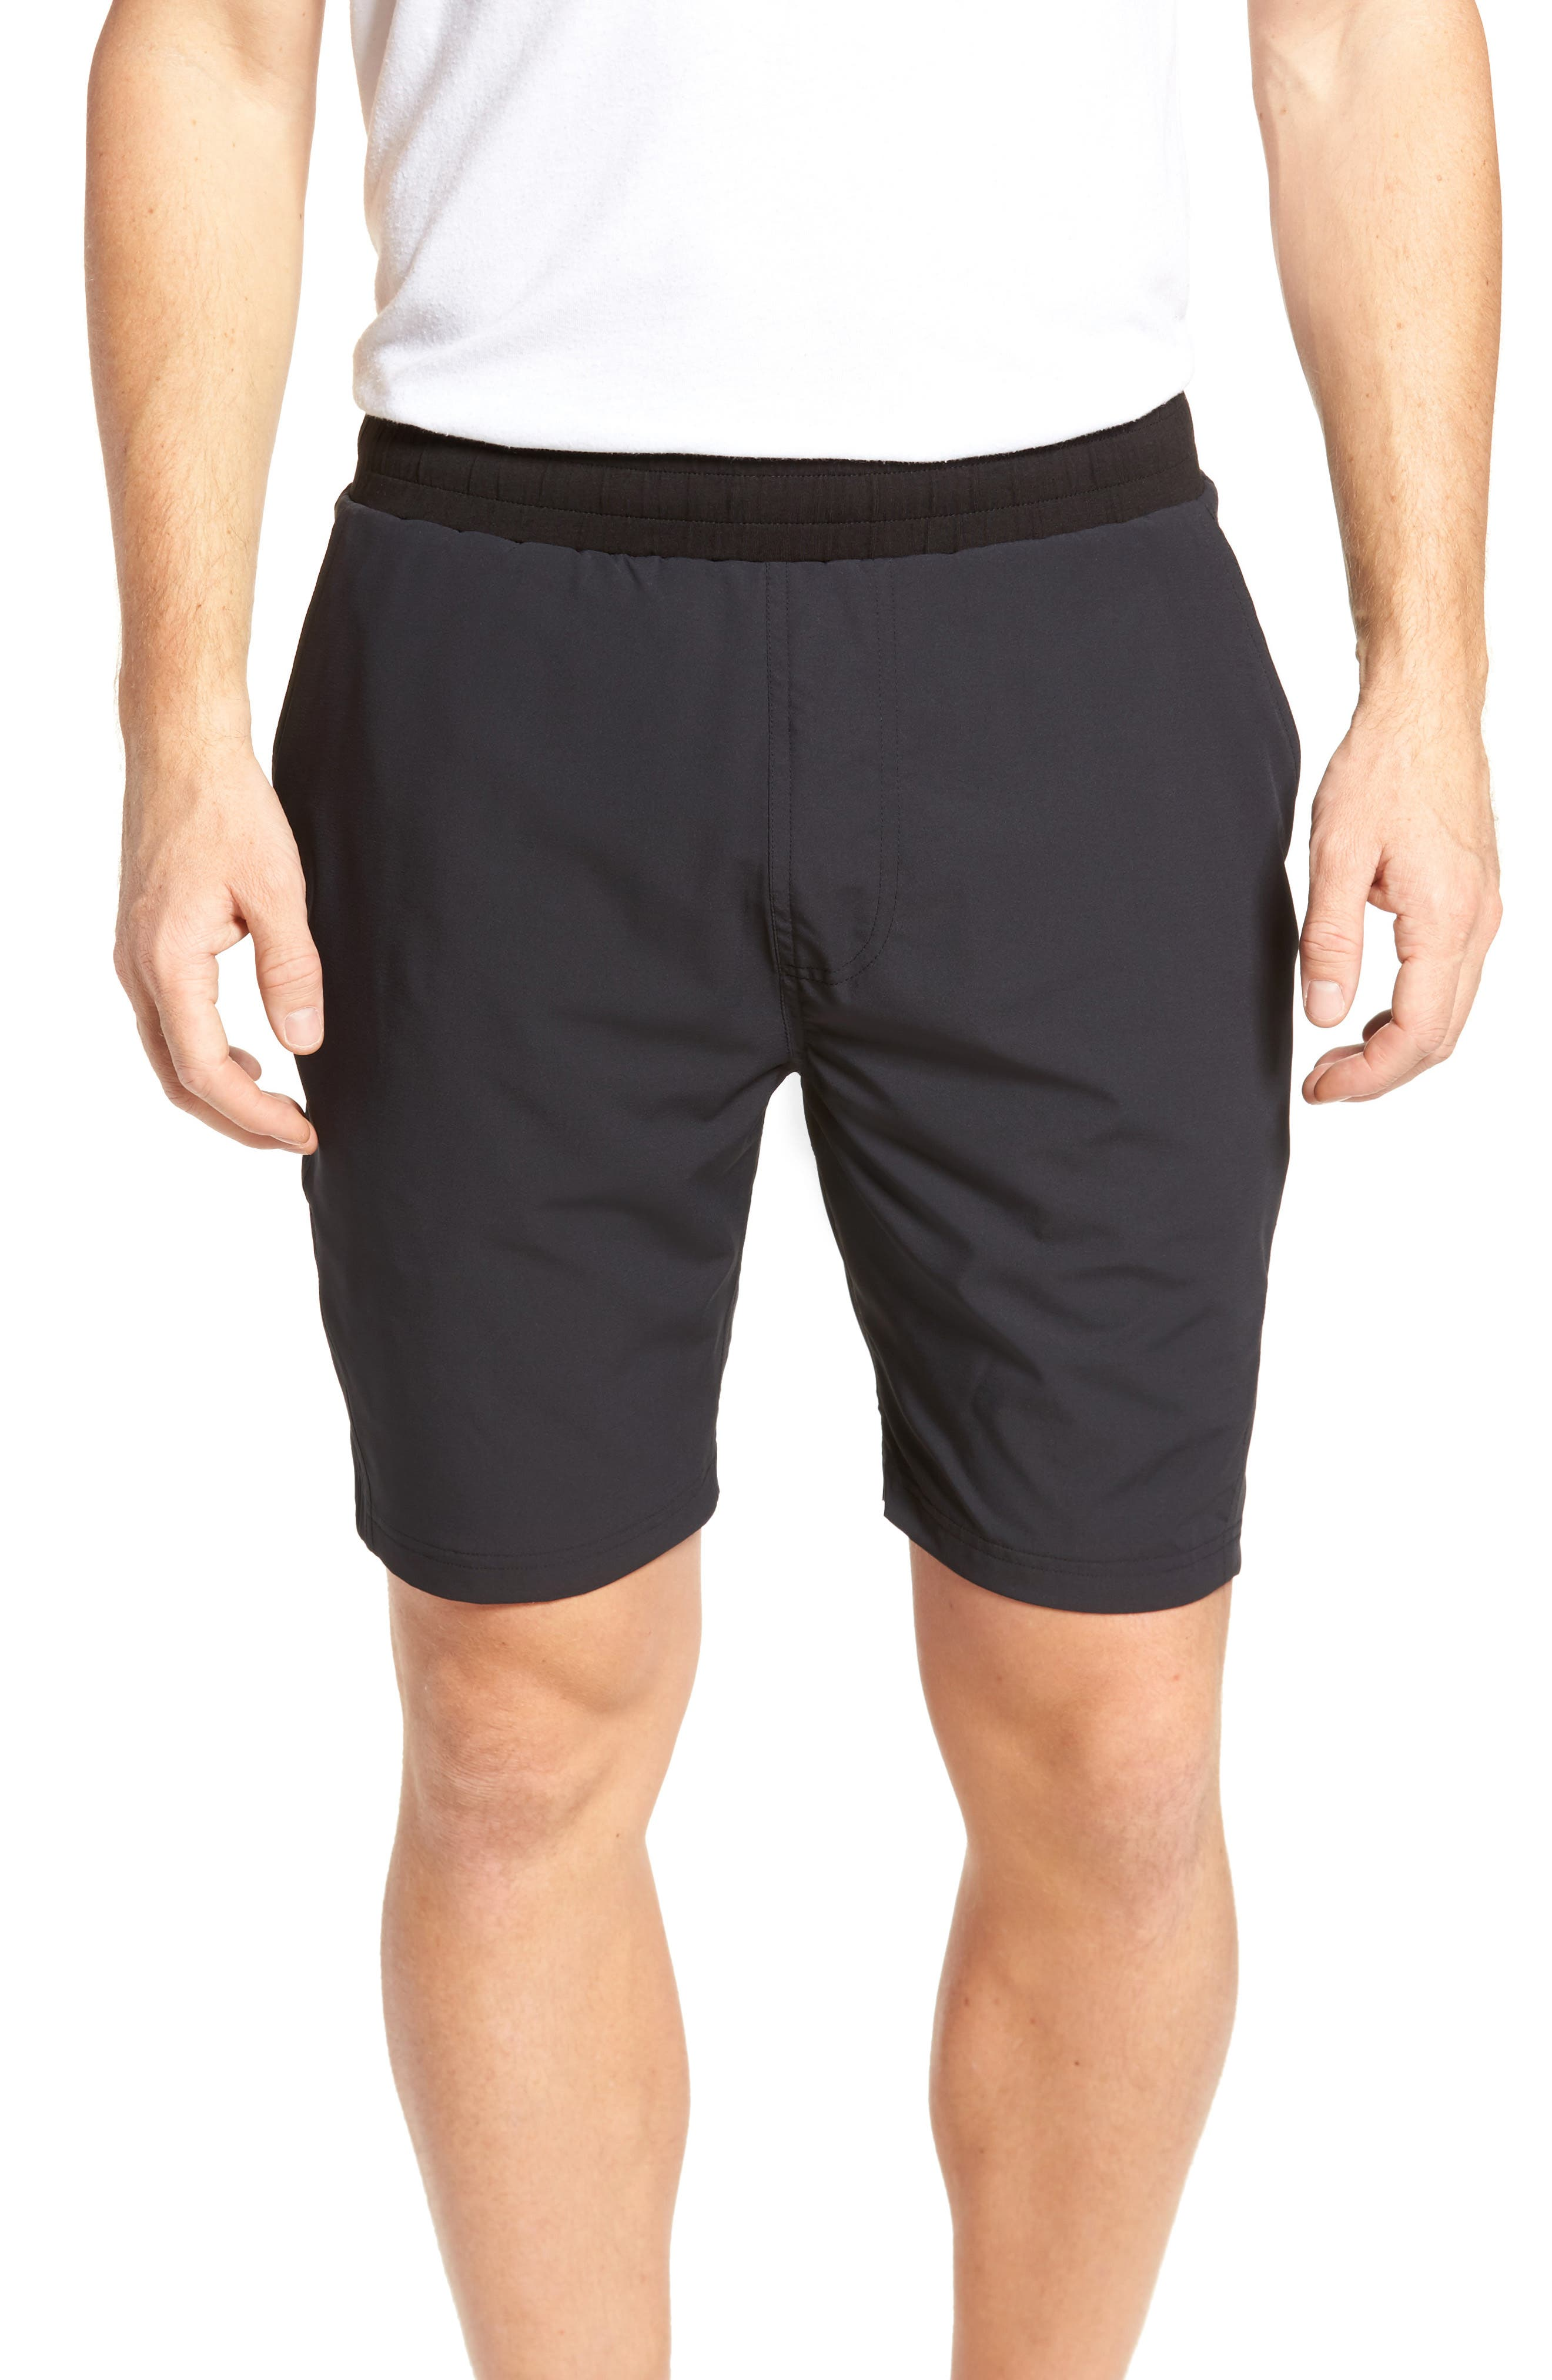 Charge Water Resistant Athletic Shorts,                         Main,                         color, BLACK